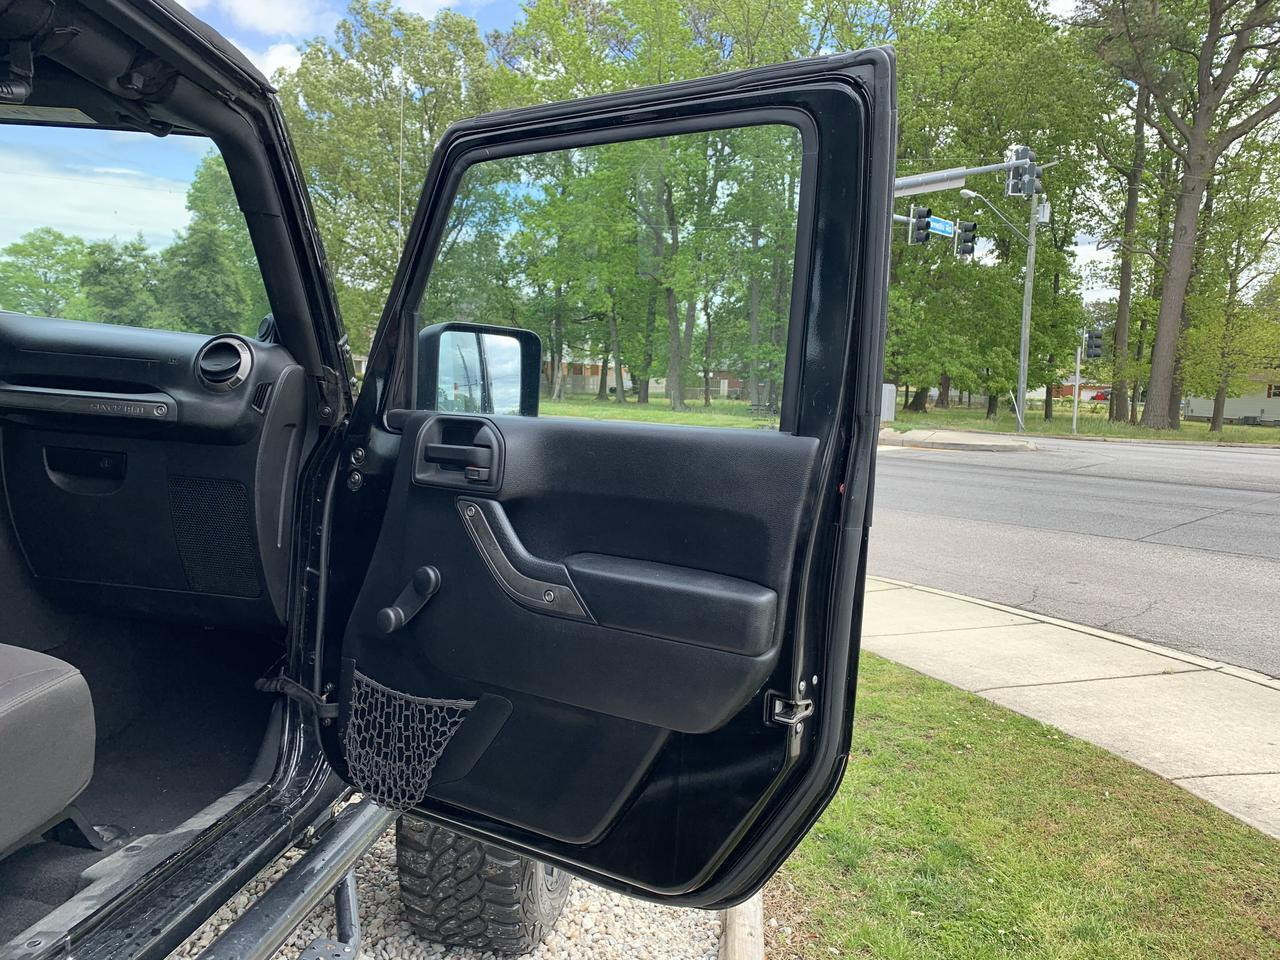 2014 JEEP WRANGLER UNLIMITED SPORT 4X4, WARRANTY, SOFT TOP, LIFTED, RUNNING BOARDS, AUX PORT, 1 OWNER, LOW MILES! Norfolk VA